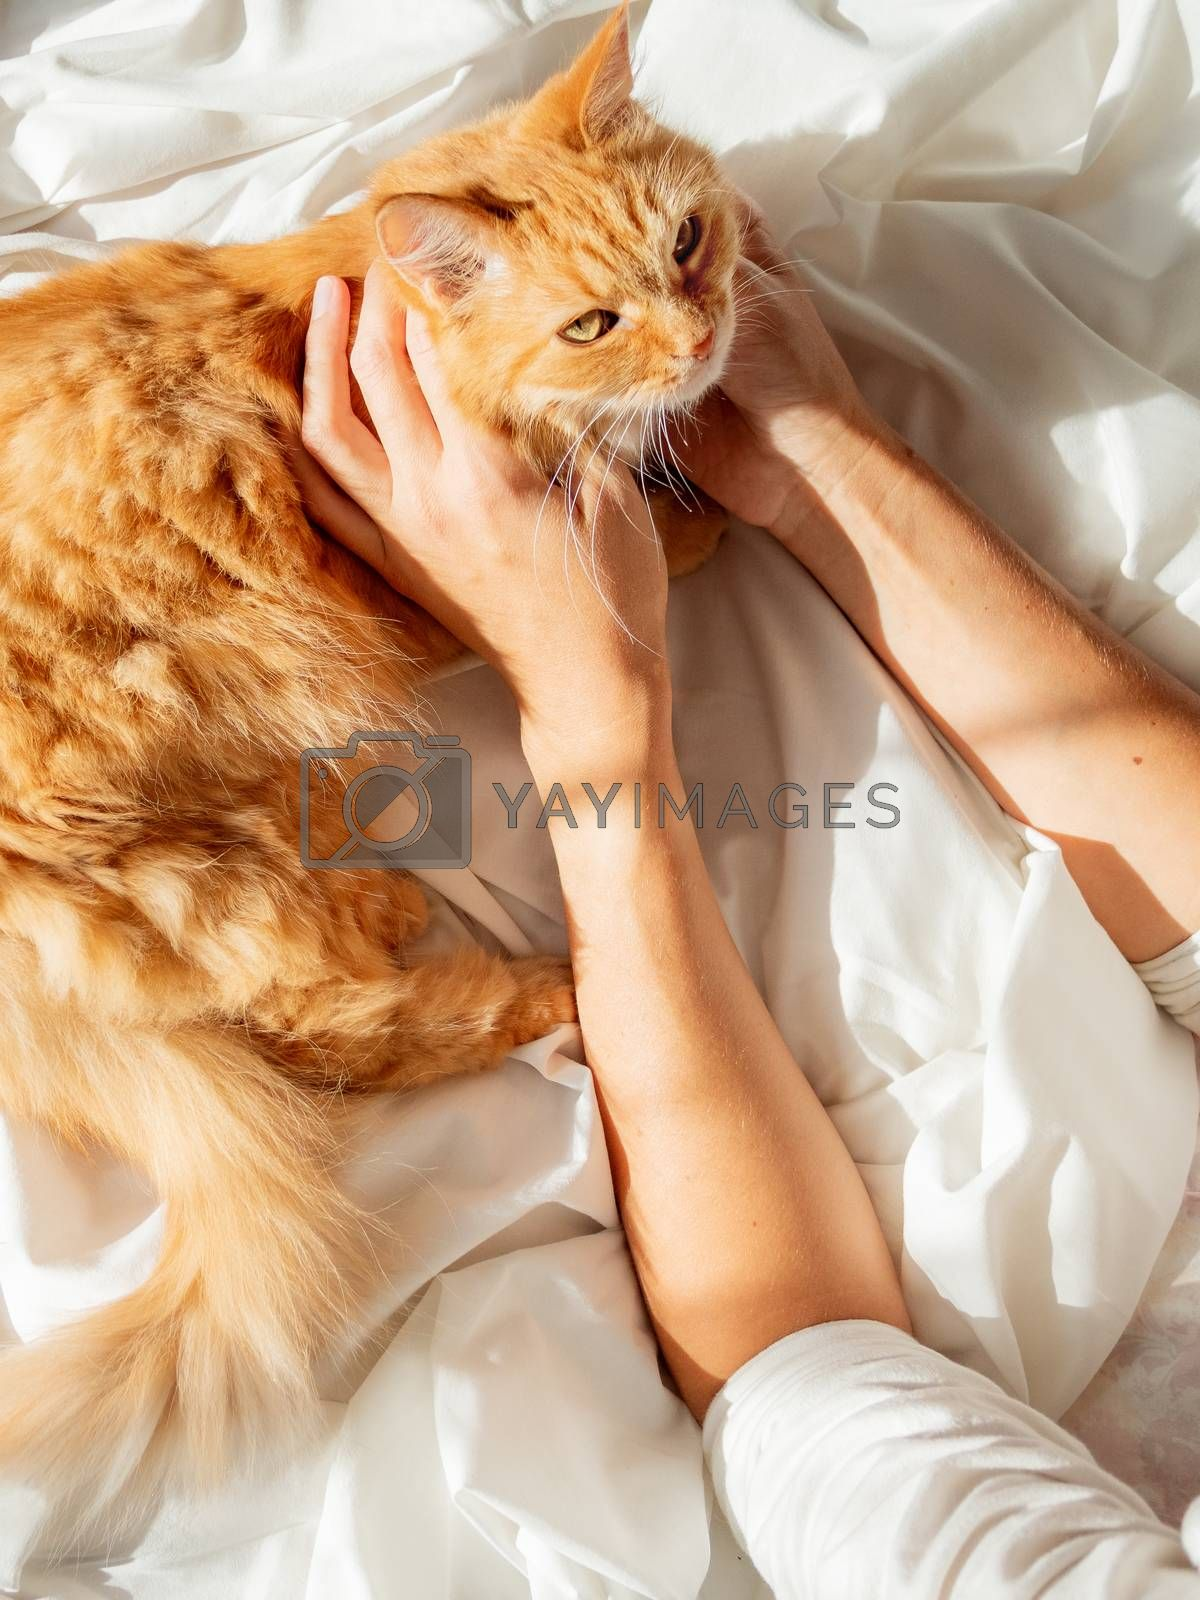 Cute ginger cat lying on woman's hand. Fluffy pet on unmade bed. Fuzzy domestic animal with owner in cozy home. Cat lover.